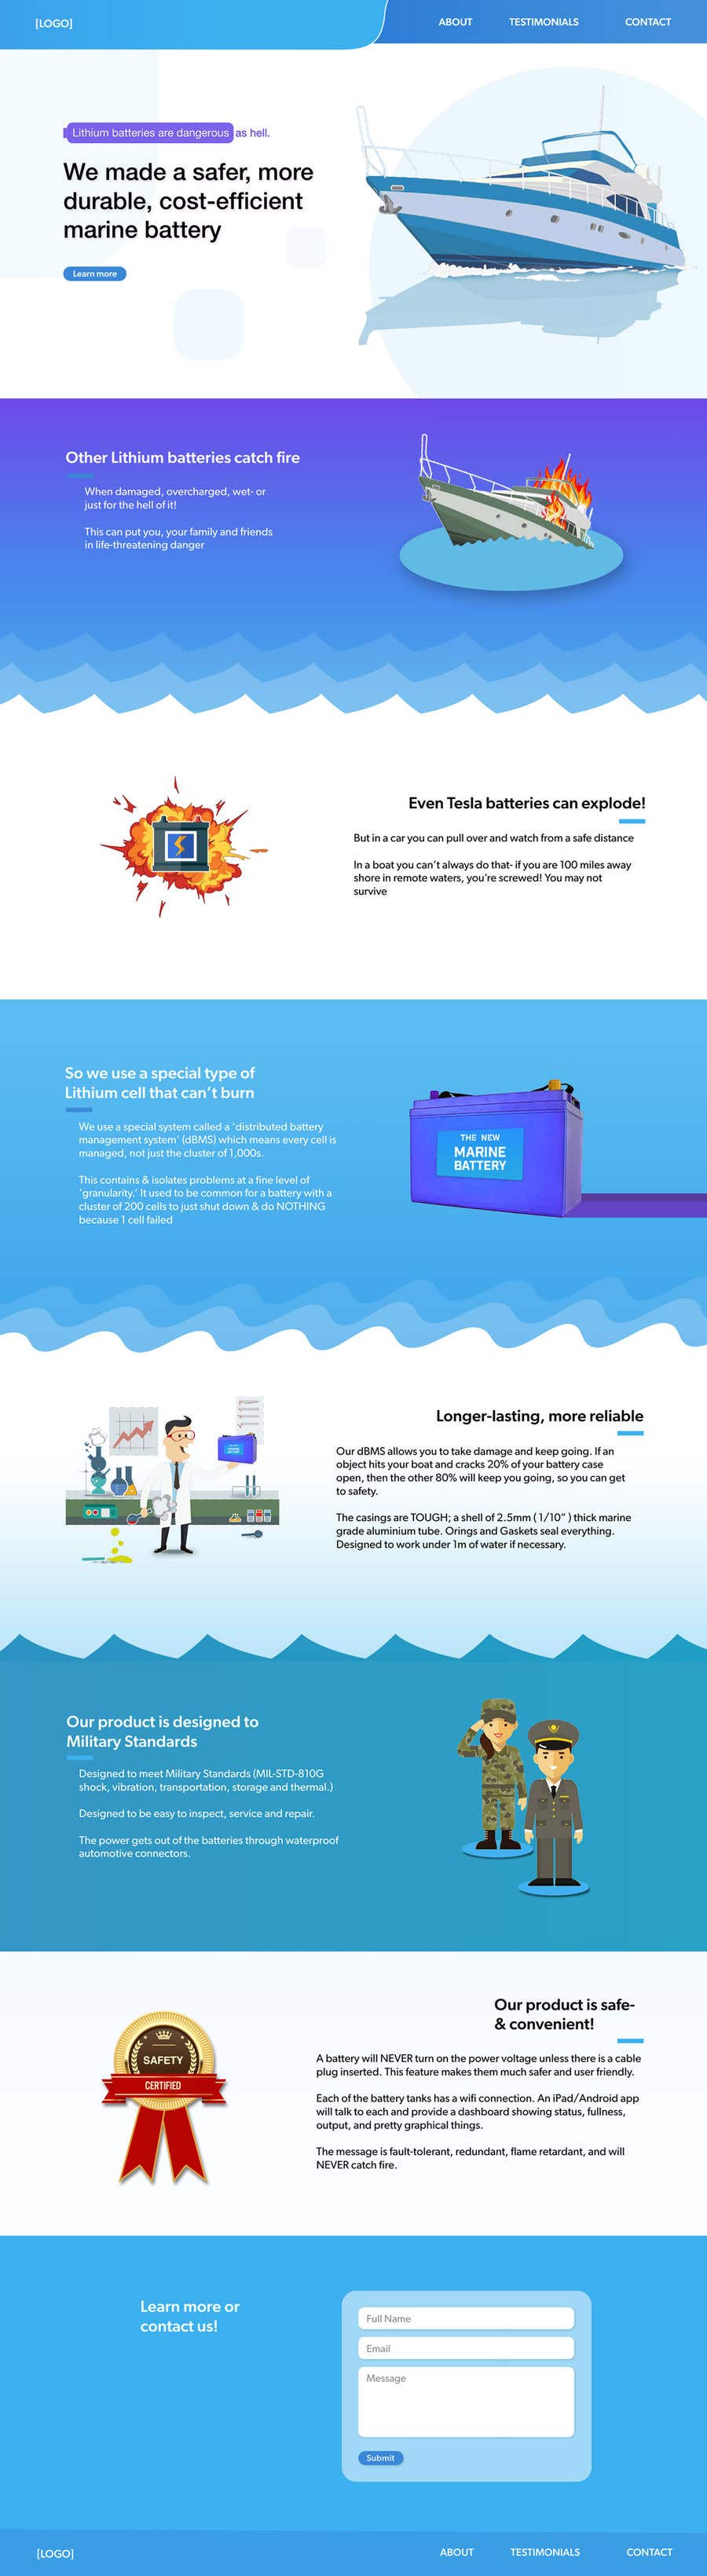 Bài tham dự cuộc thi #                                        63                                      cho                                         Explainer Website for Marine Battery startup product